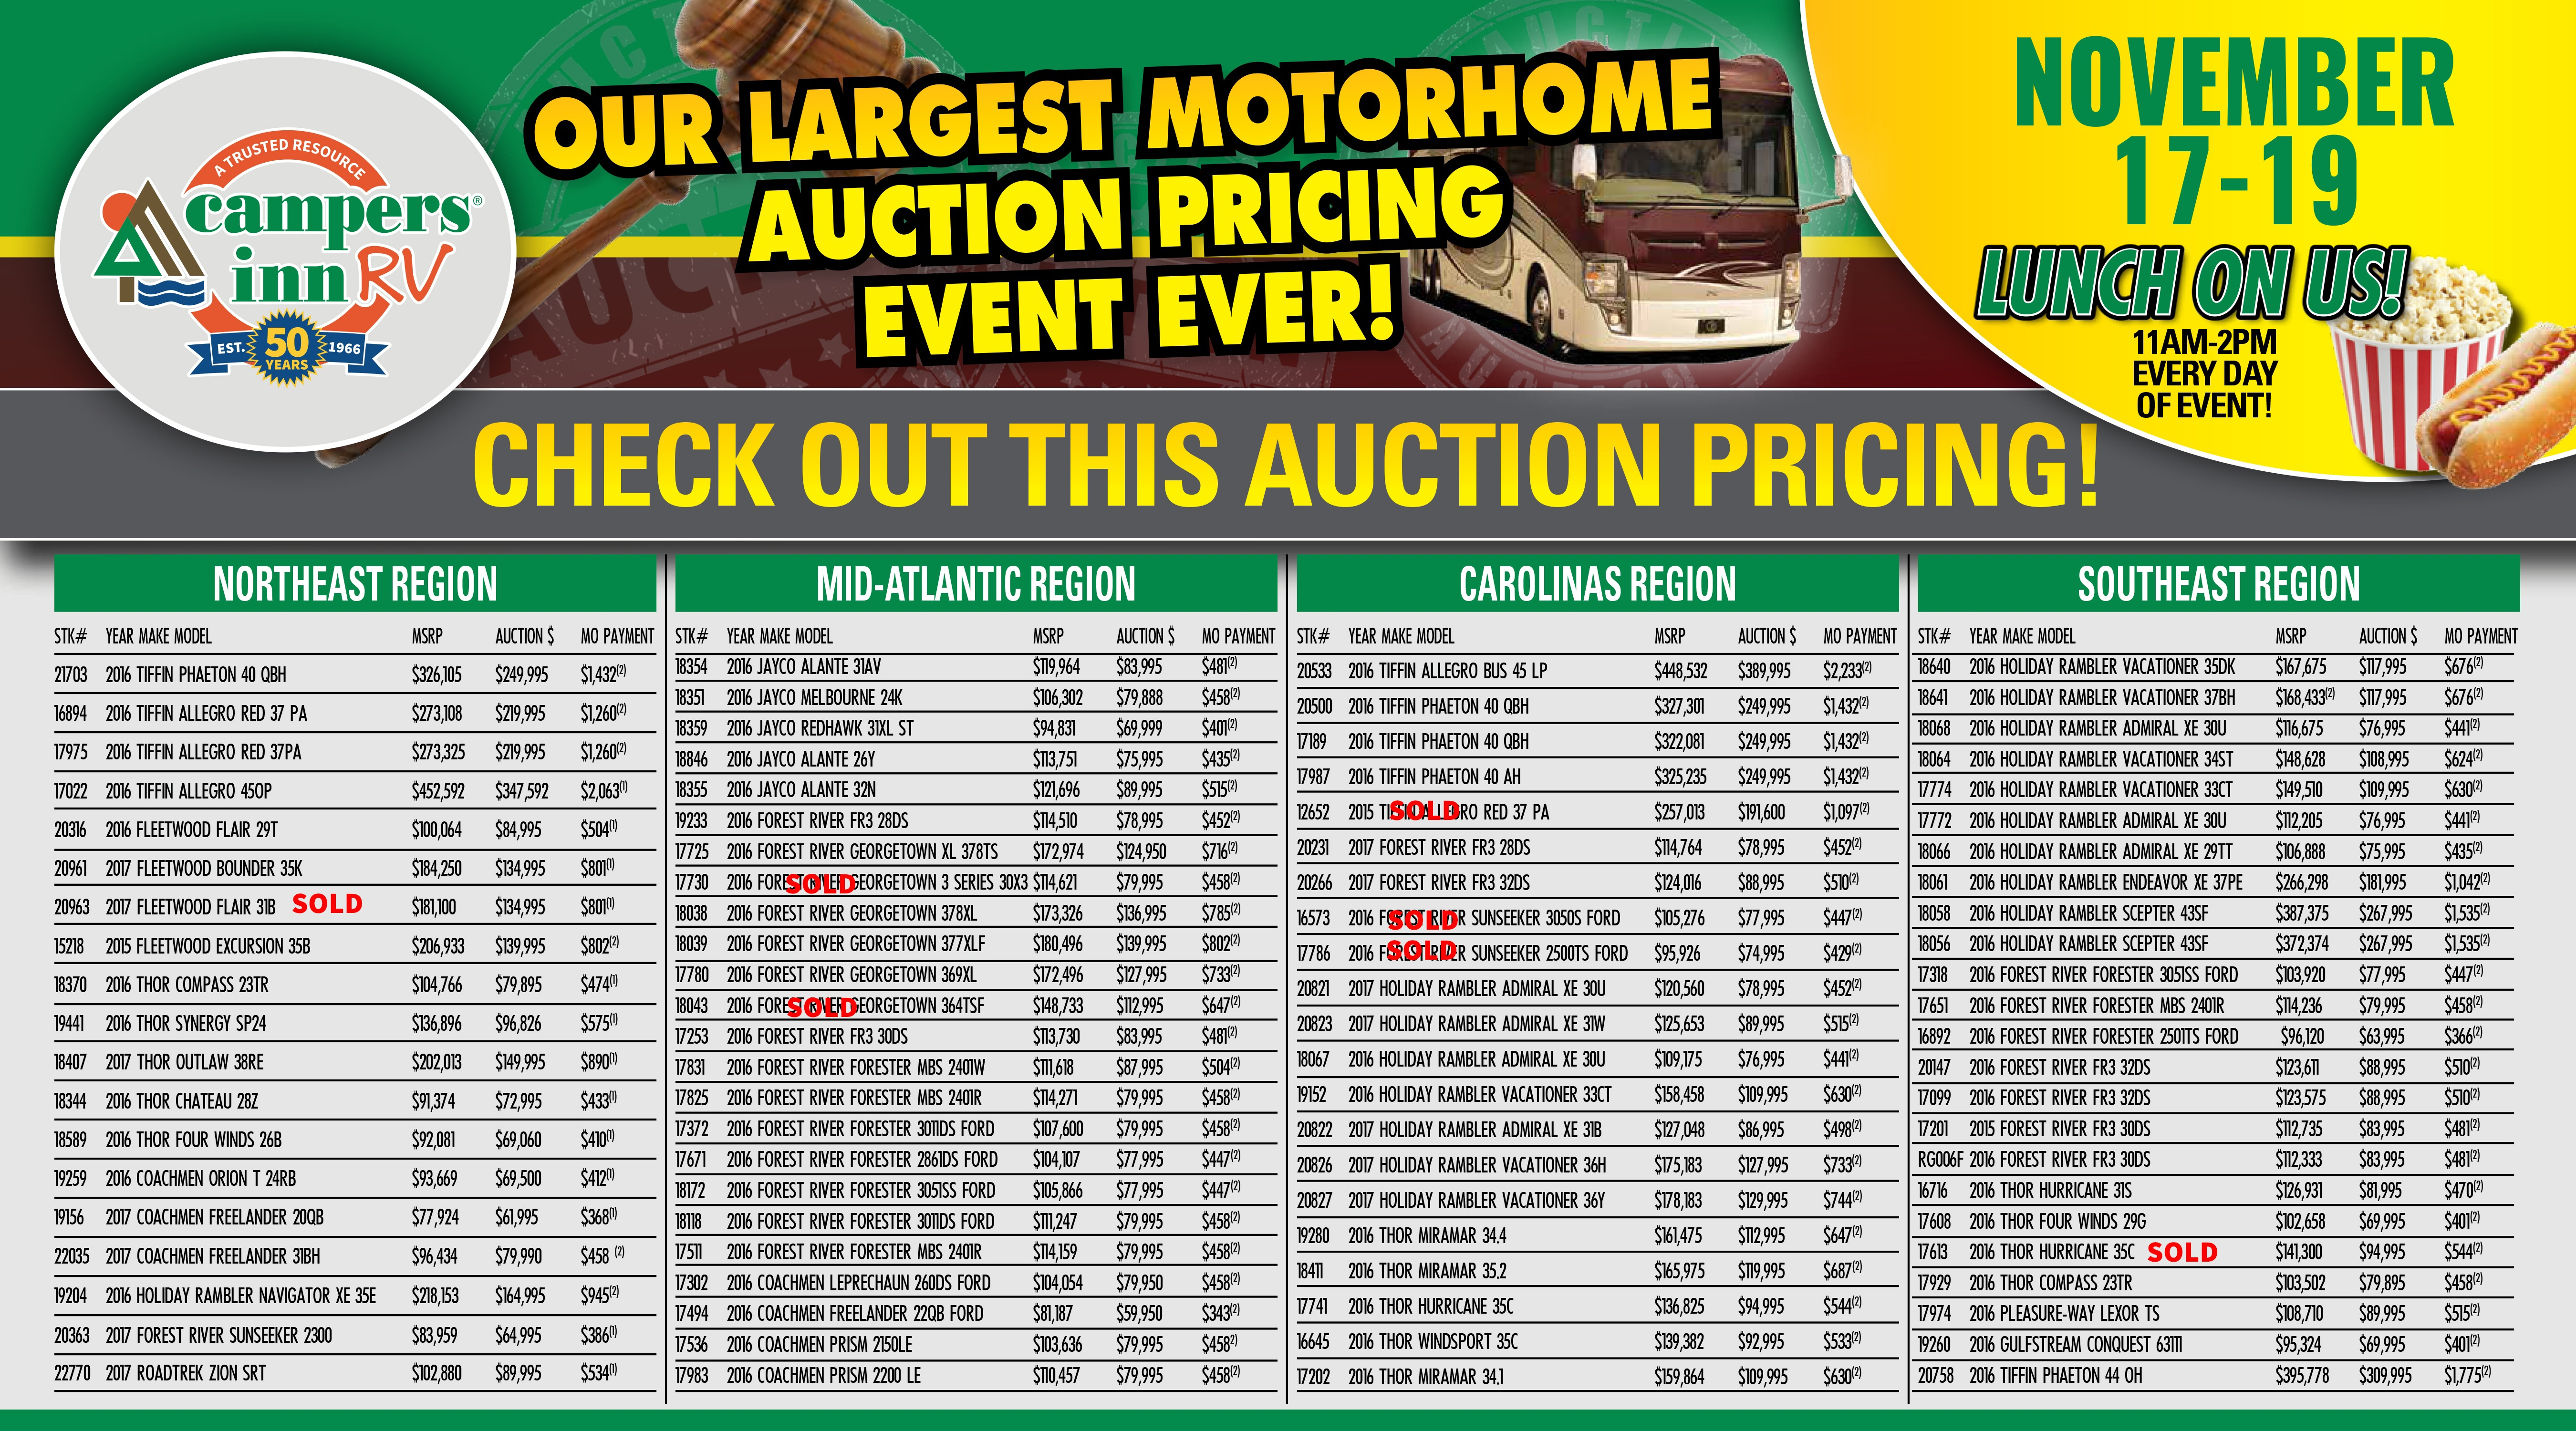 Motorhome Auction Pricing